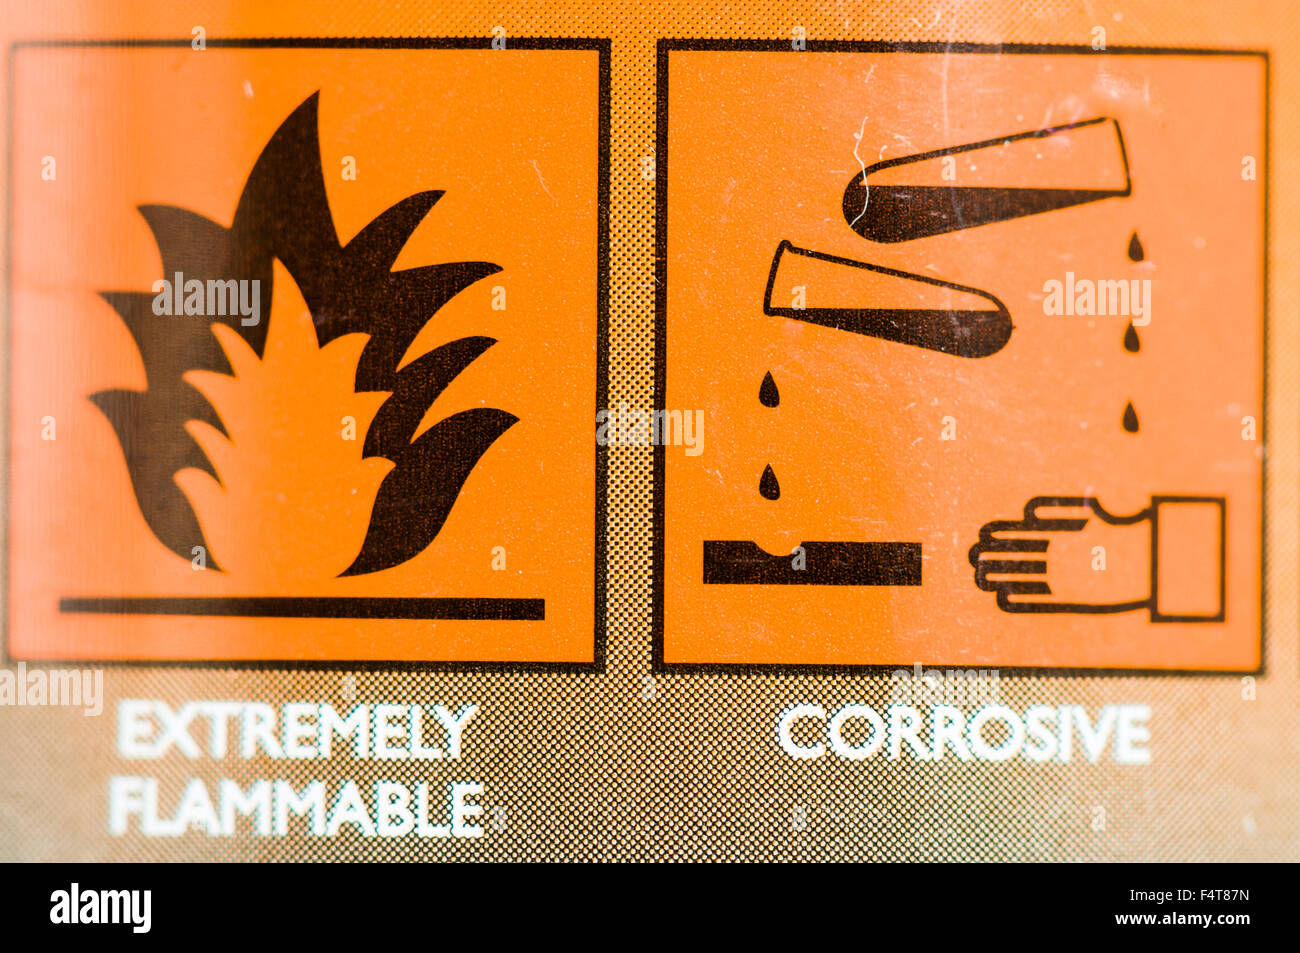 Extremely flammable and corrosive warning labels on a cleaning product - Stock Image